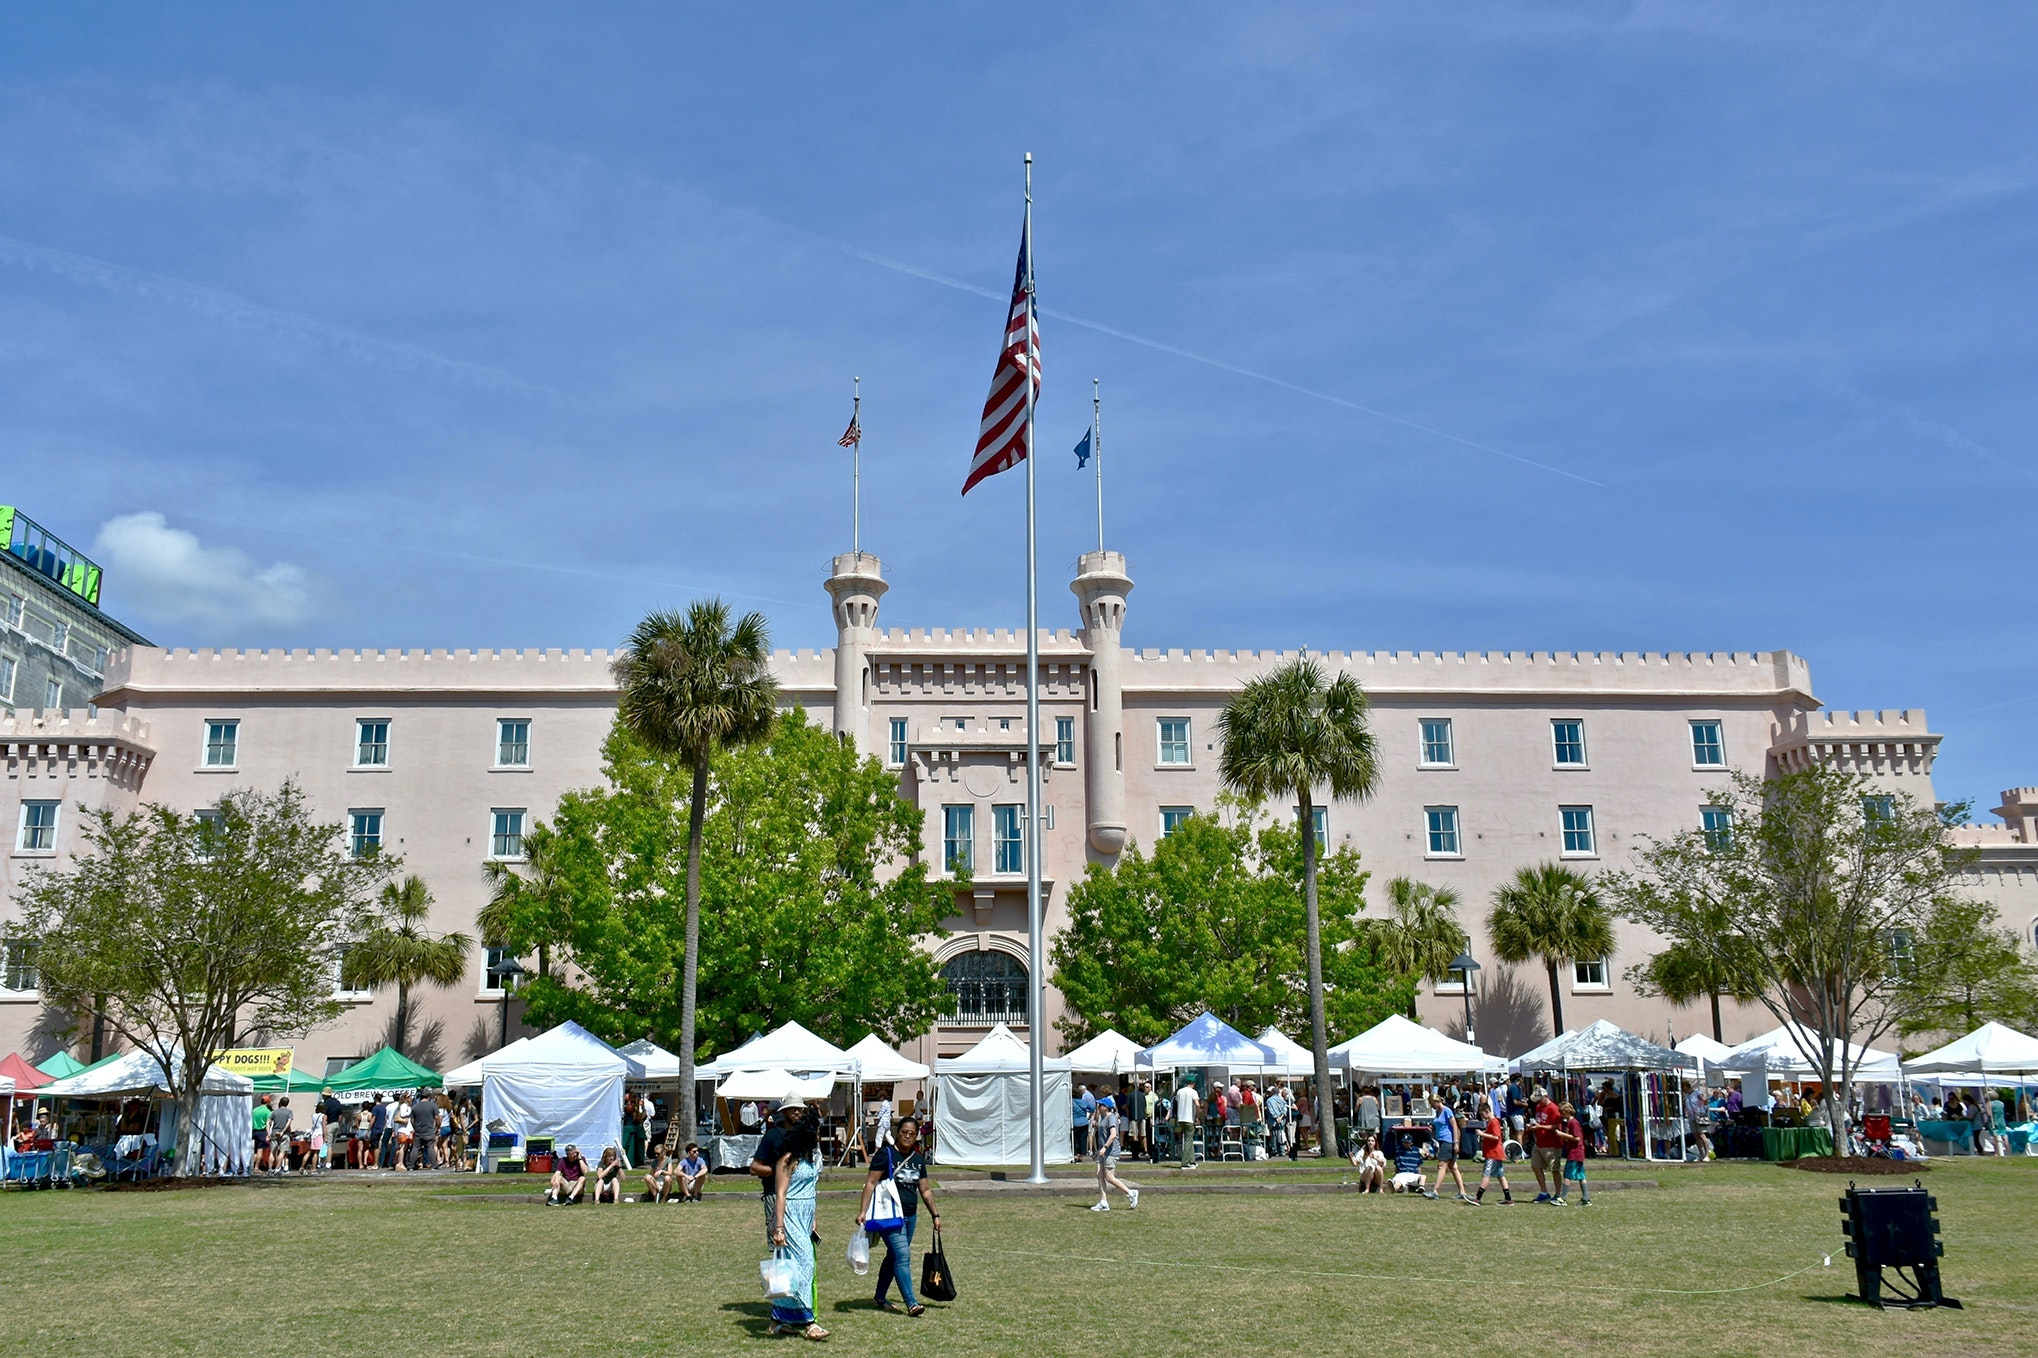 The green heart of Marion Square is the site of the Saturday Farmers' Market.